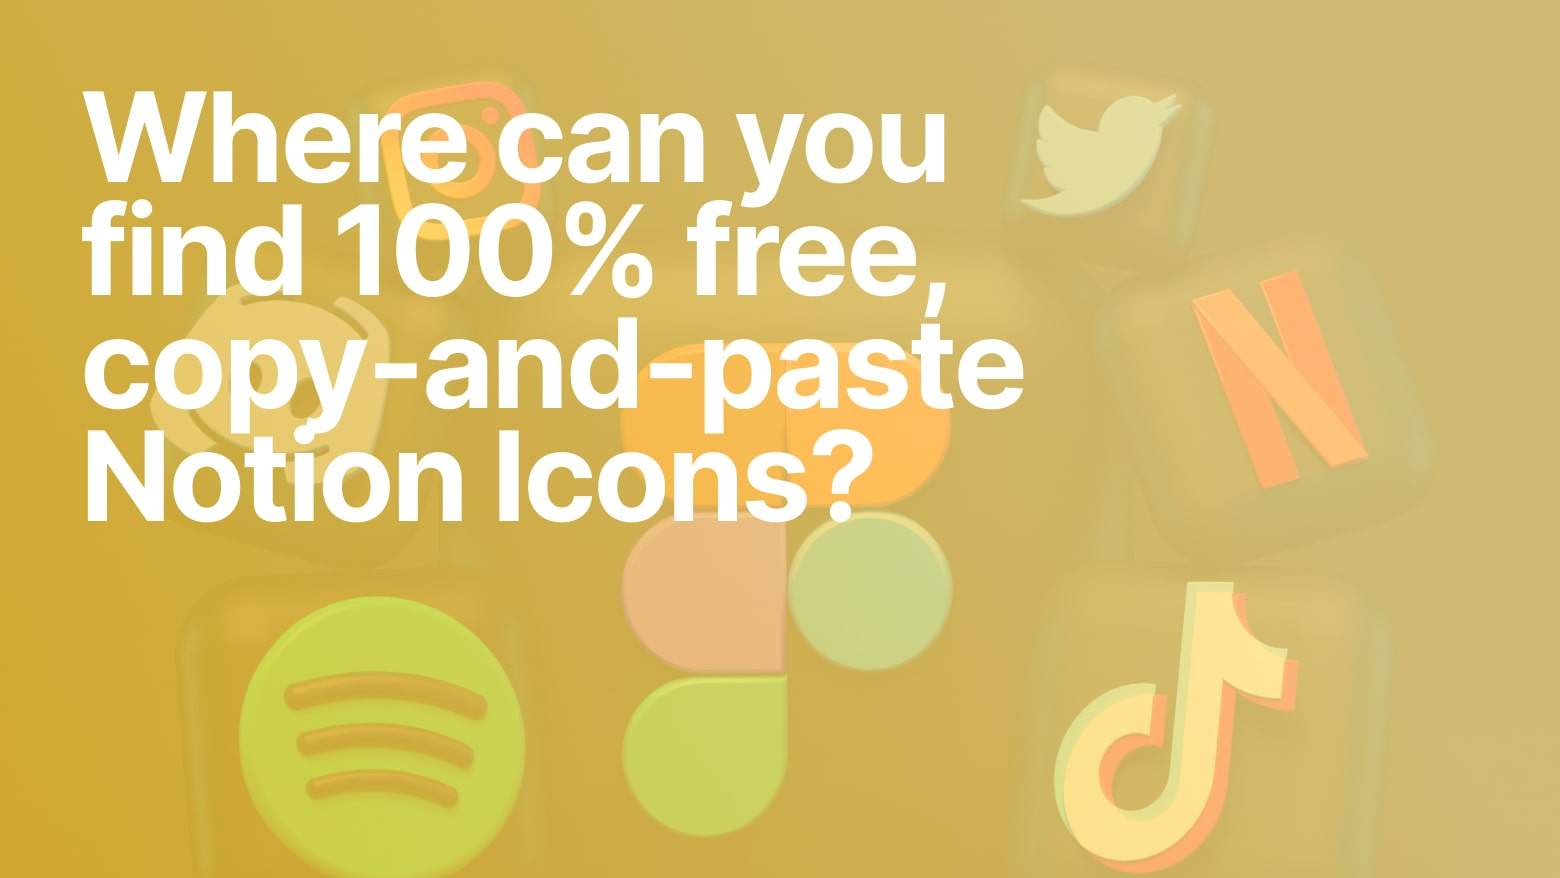 Notion Icons (100% Free): How, where, and why